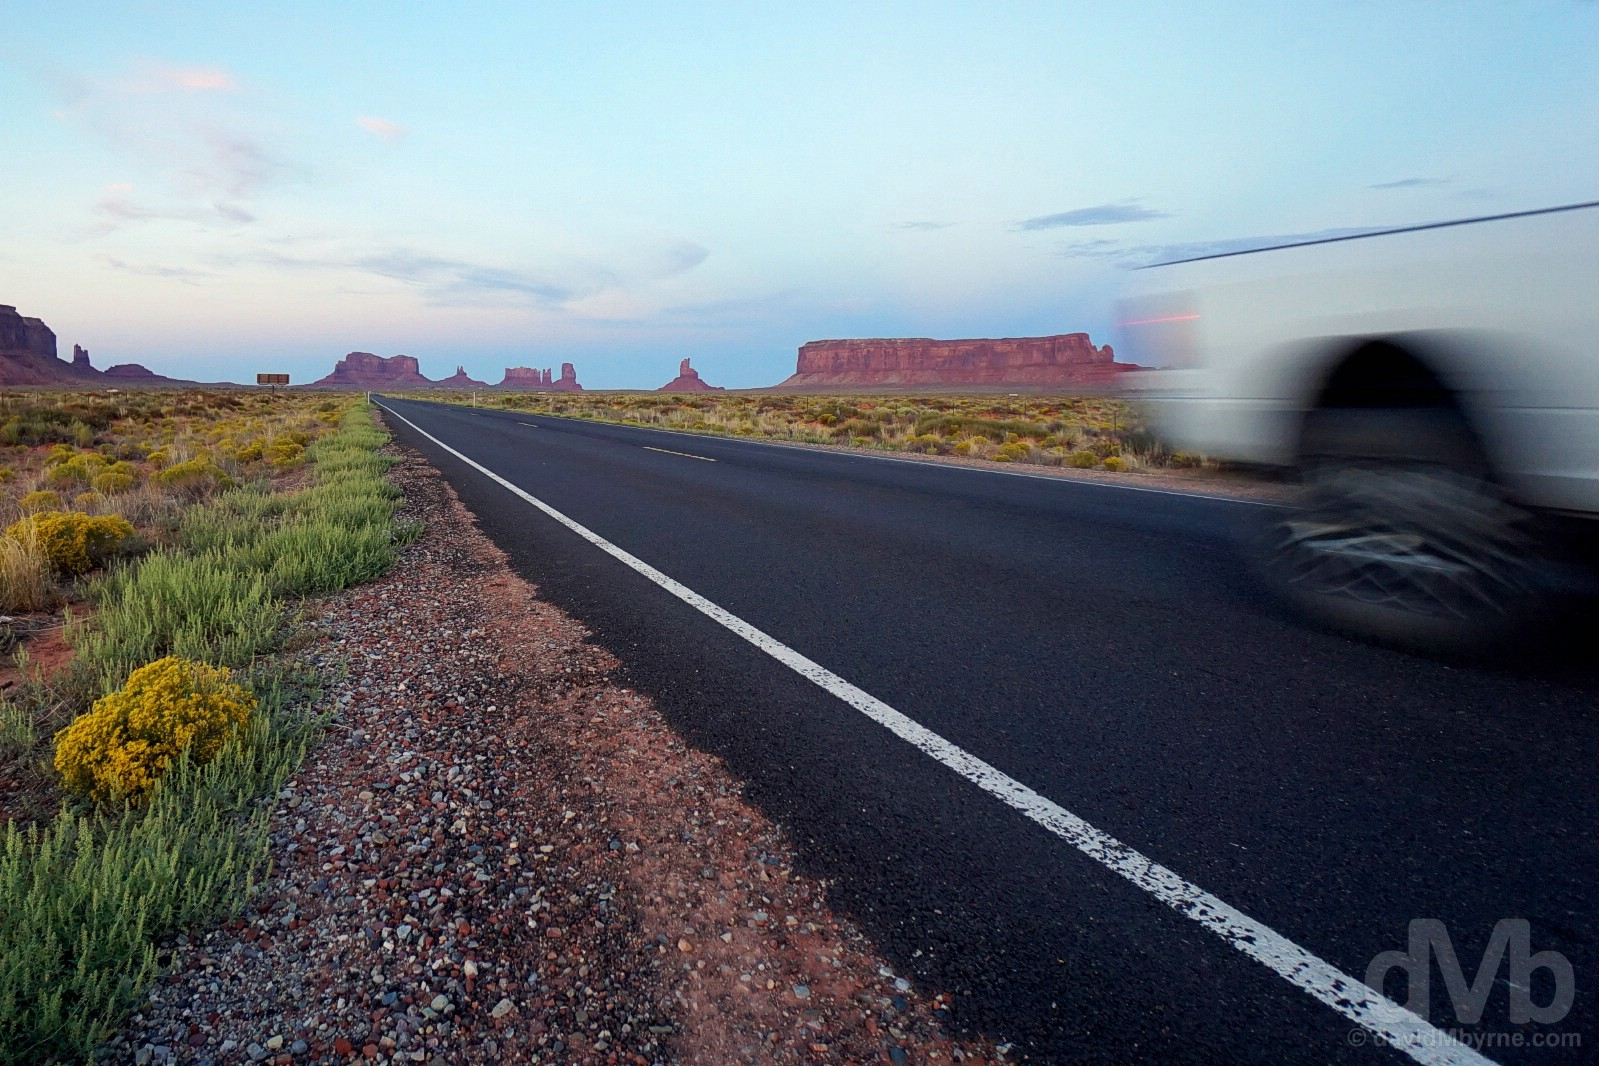 On US Route 163 in Monument Valley, Utah, USA. September 10, 2016.